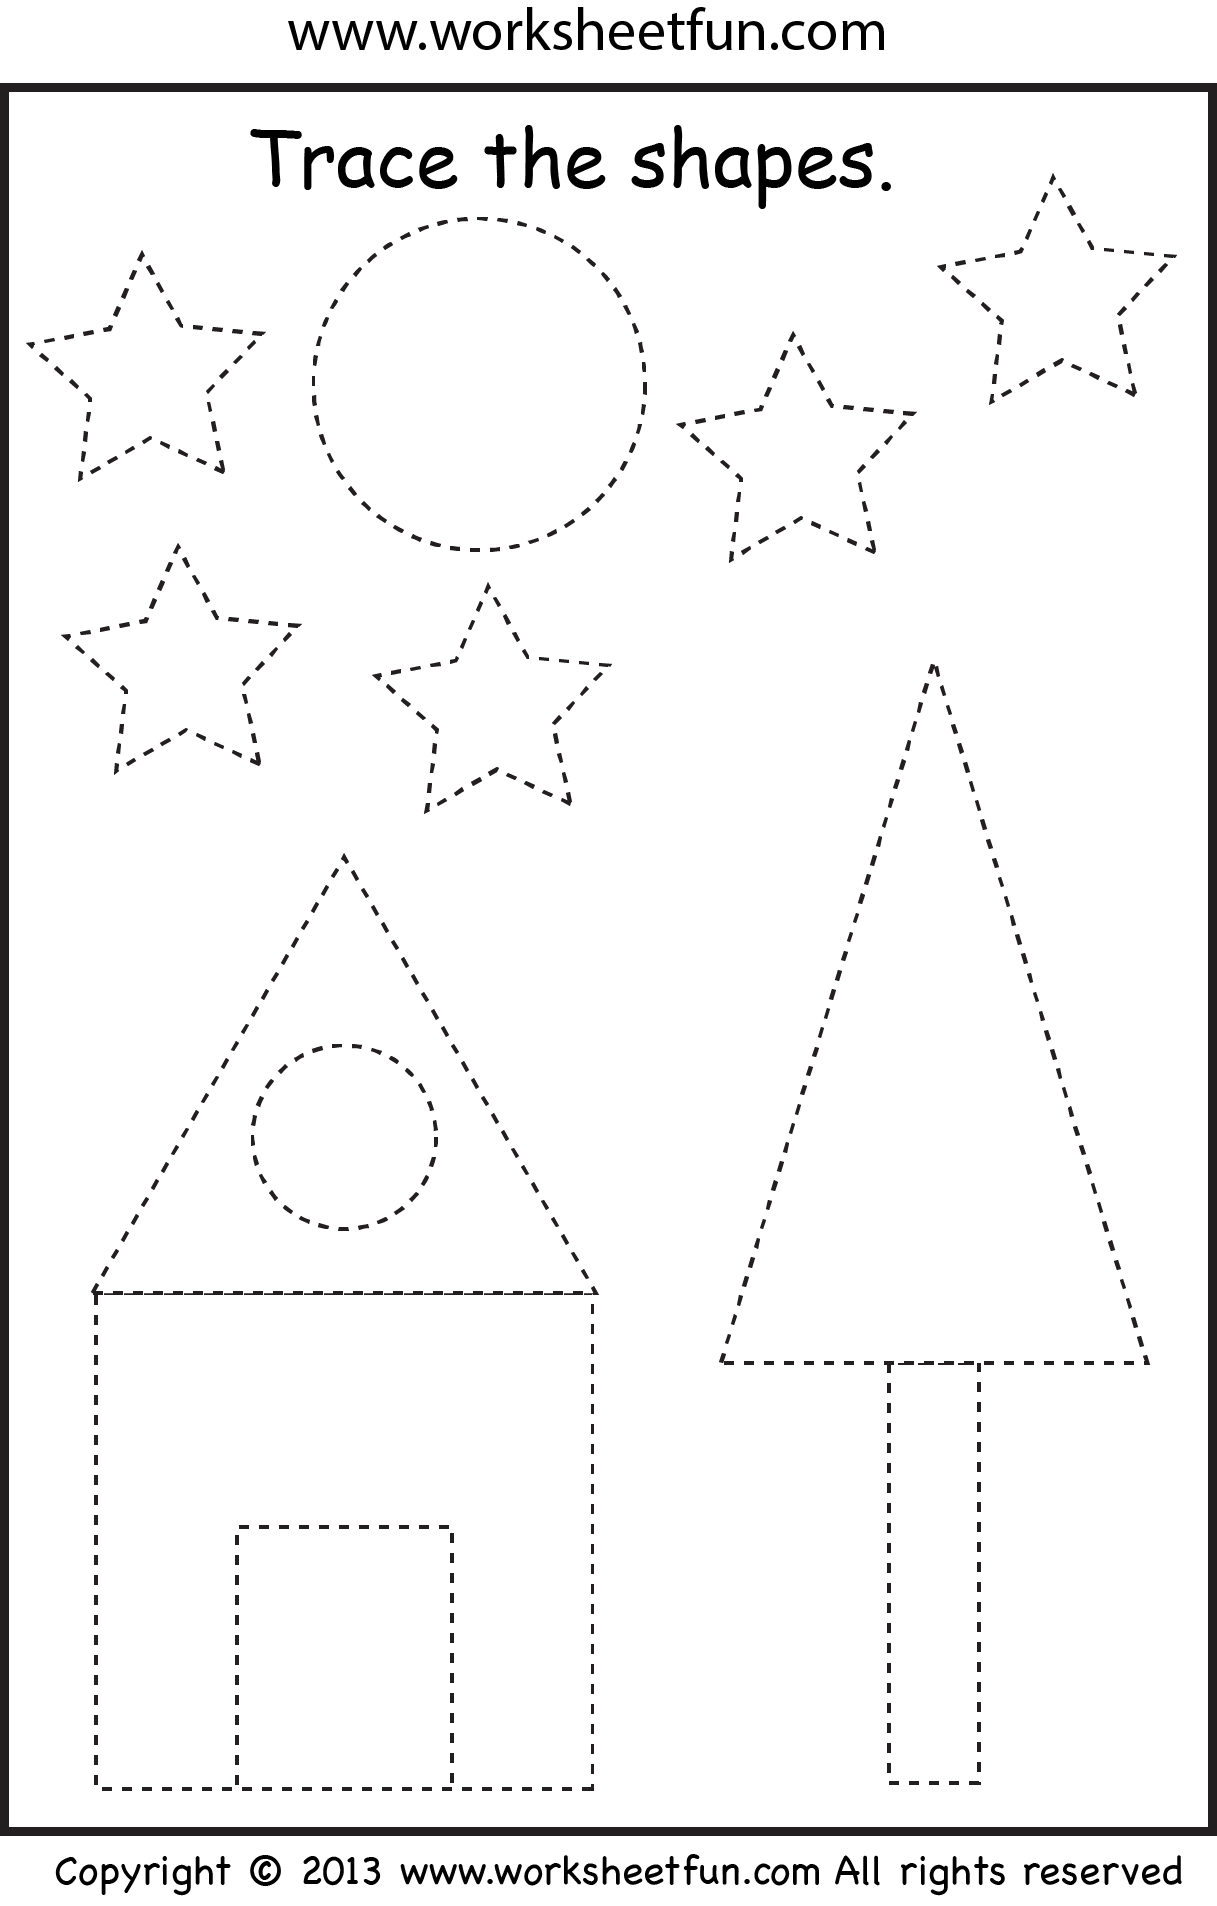 Picture Tracing Shapes Two Worksheets Free Printable Worksheets Worksheetfun